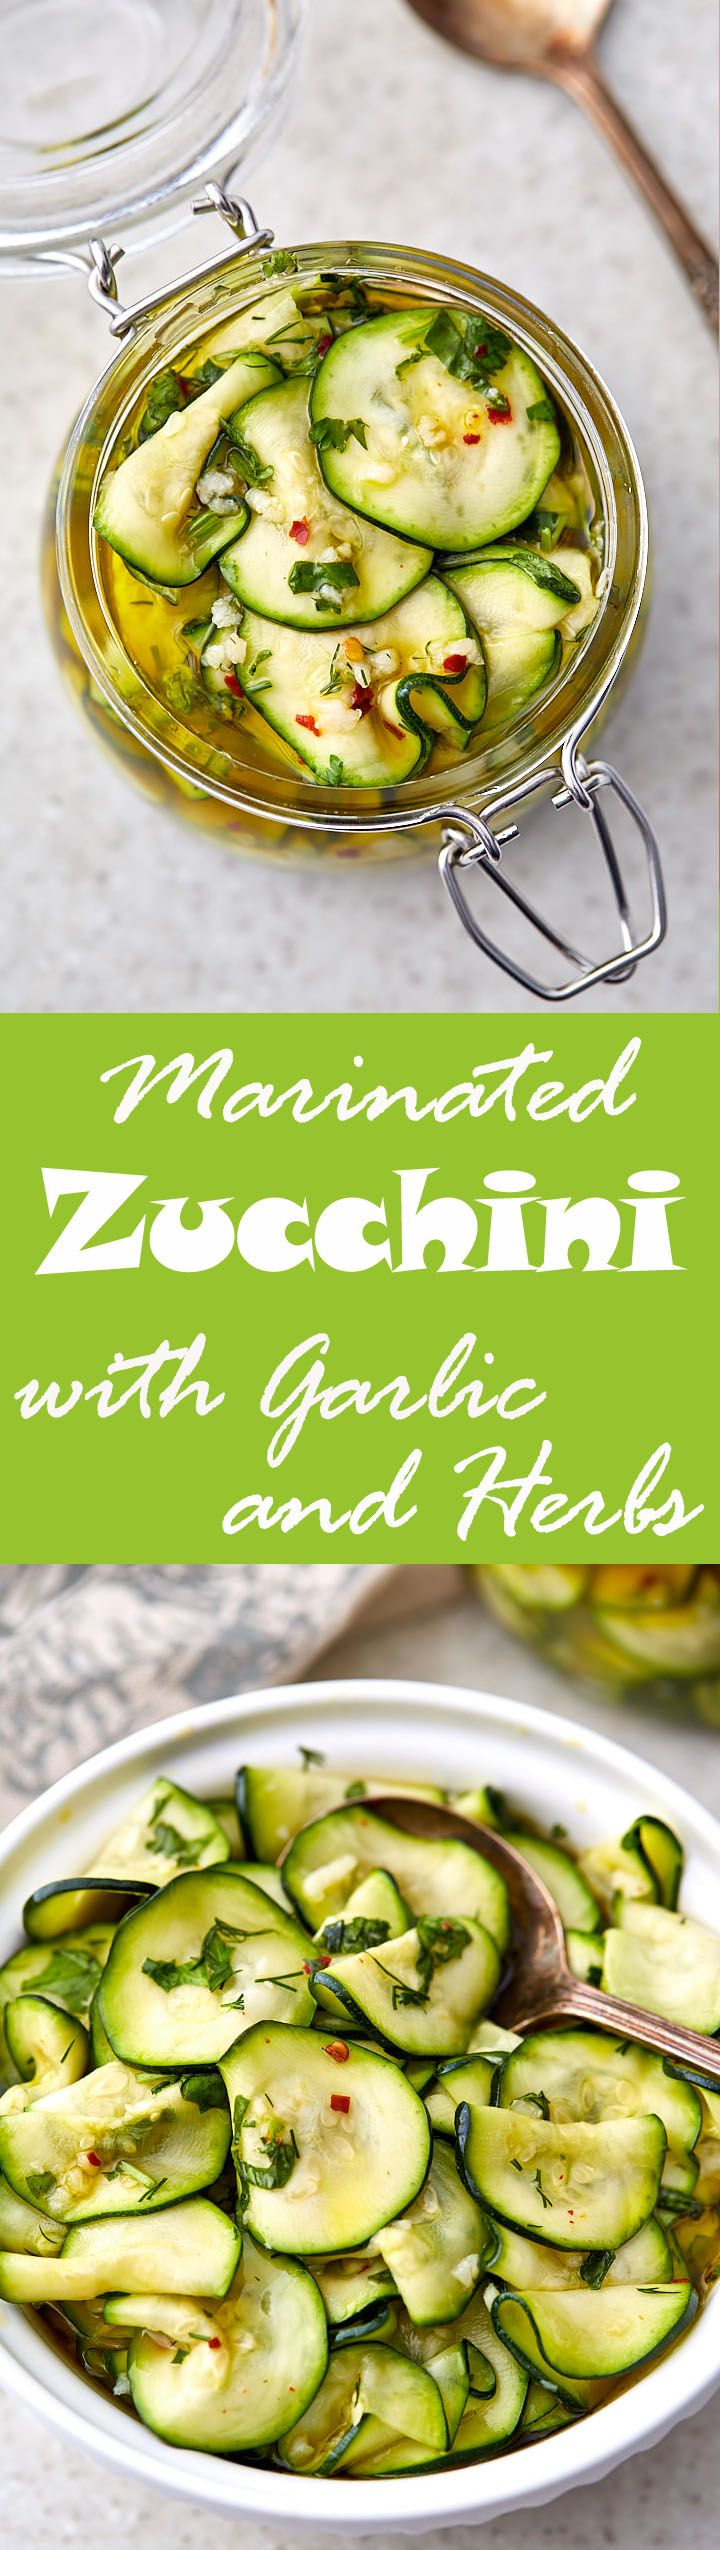 Marinated zucchini are great as a snack on their own or as an accompaniment to grilled meats and many other dishes. Try them with your next BBQ, or mashed potatoes, or as a plain snack.